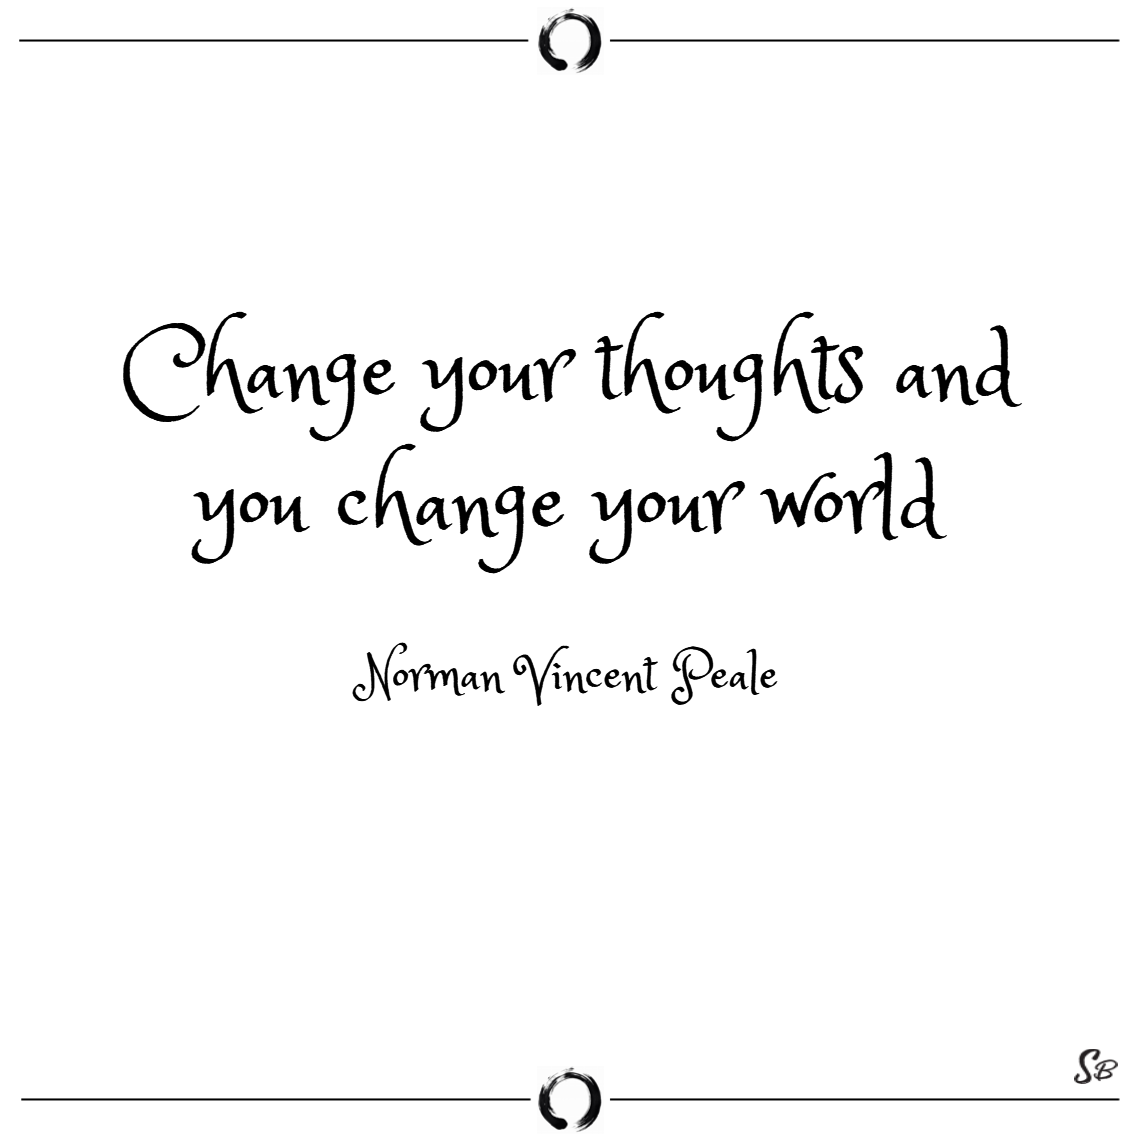 Change your thoughts and you change your world. – norman vincent peale